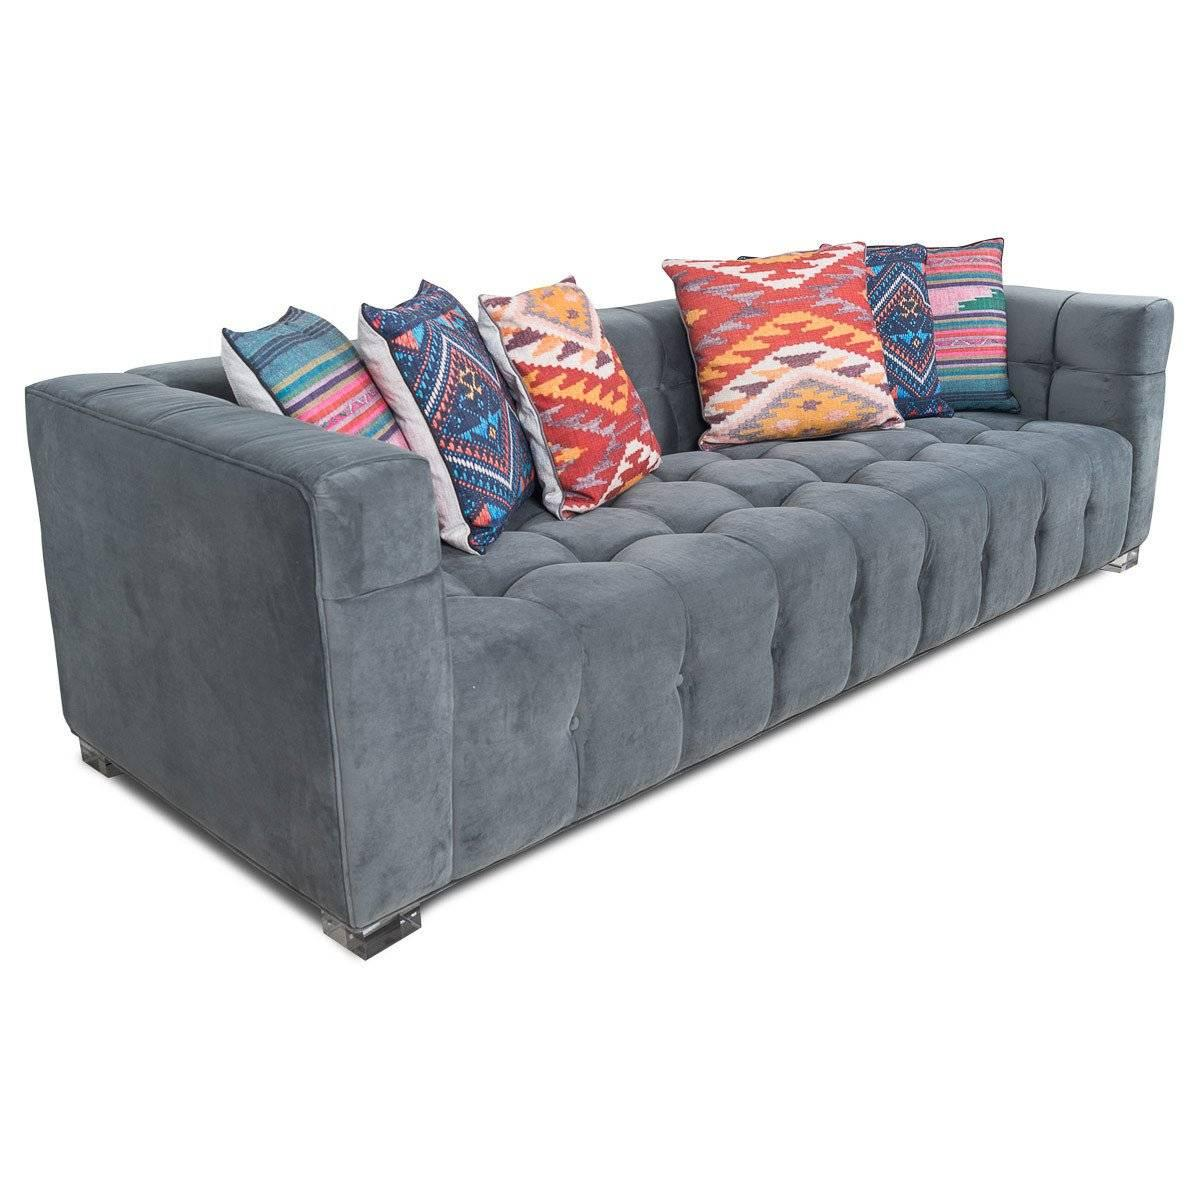 American Modern Style Sofa In Charcoal Velvet With Biscuit Tufting And  Lucite Block Legs For Sale